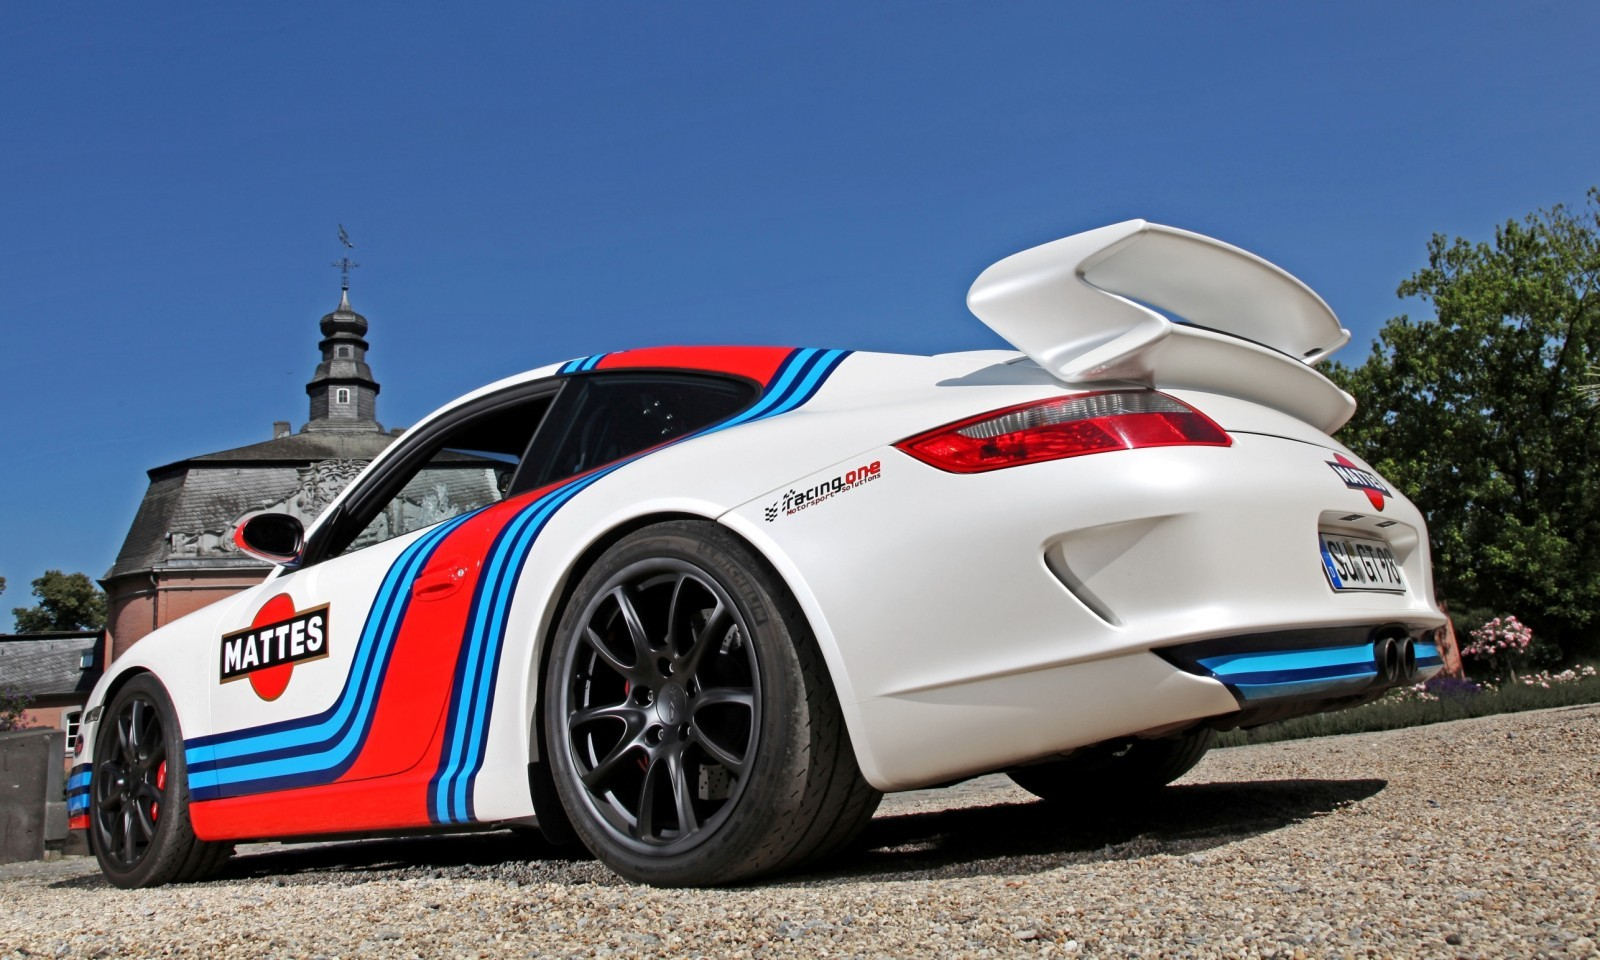 Martini-style Racing Livery by CAM SHAFT for the Porsche 911 GT3 2